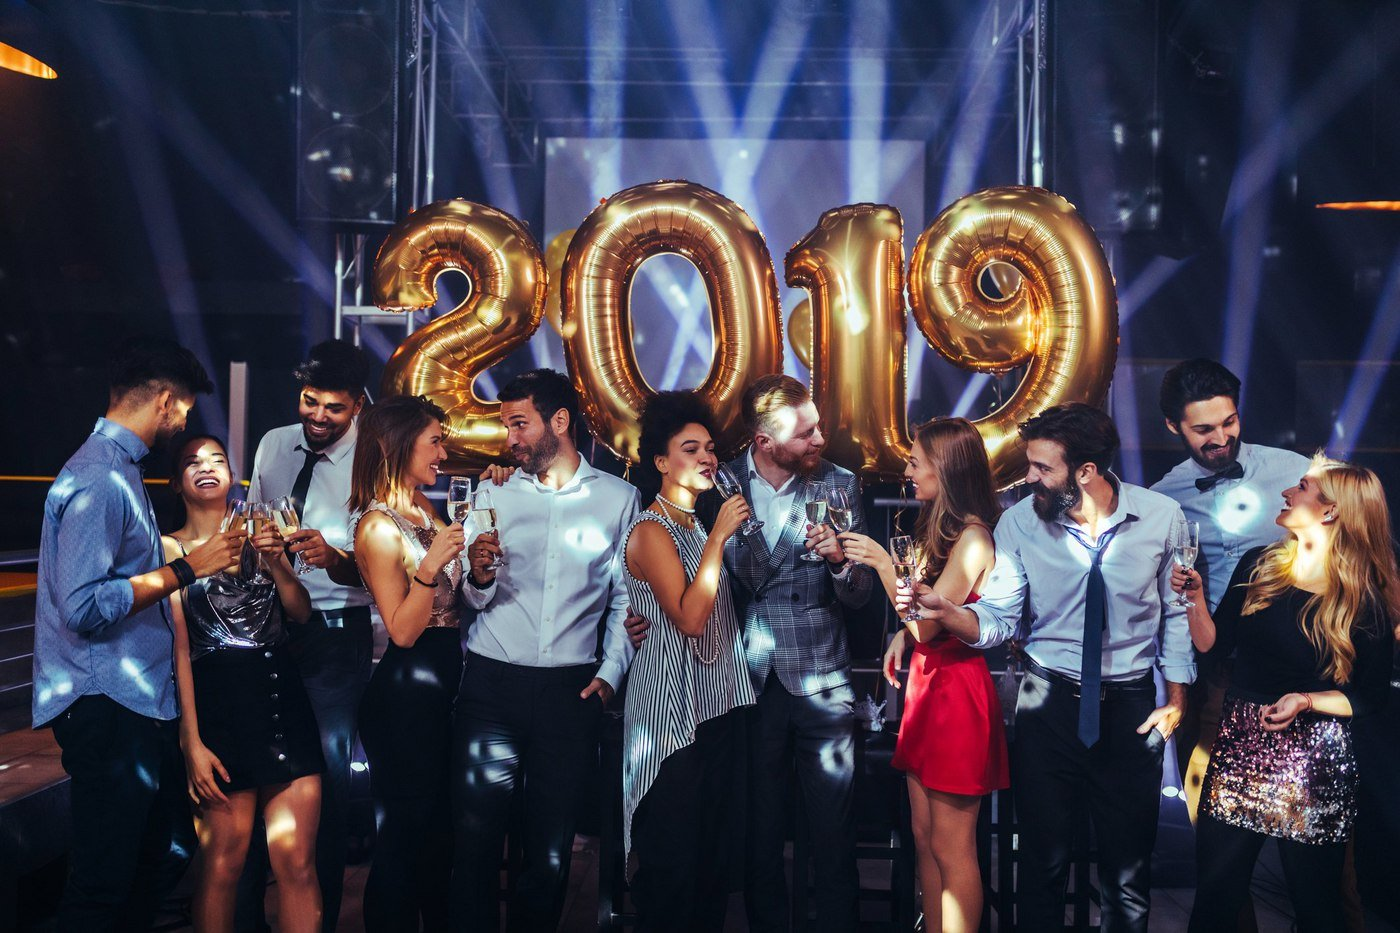 ICD-10 Codes for Celebrating: New Year's Eve Edition!